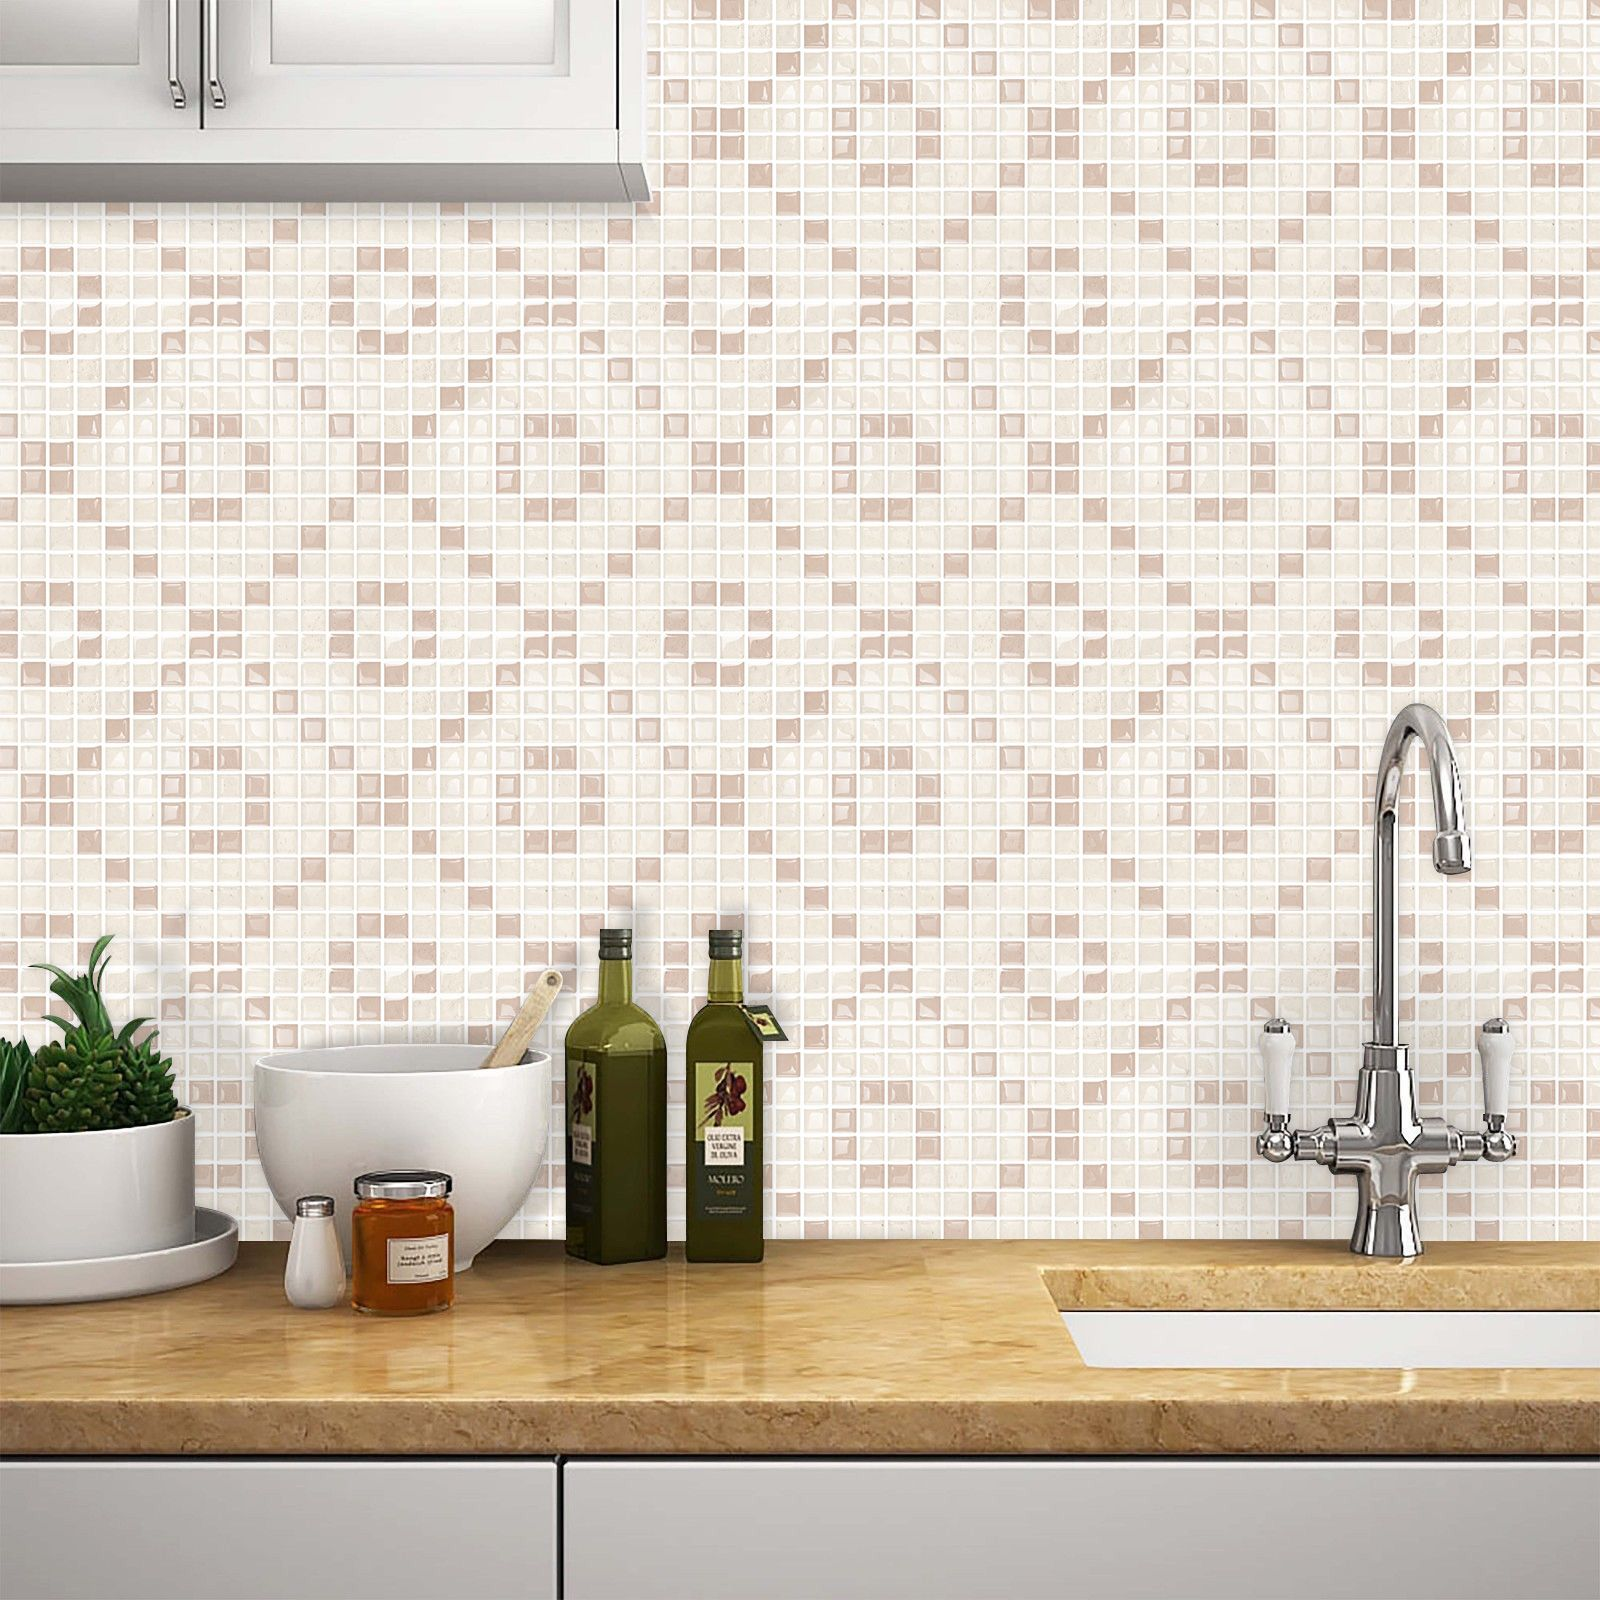 China Factory Direct Wholesale Peel And Stick Tile Self Adhesive Wall Tile View Peel And Stick Tile Artiles Product Details From Shenzhen Exploiter Epoxy Co Self Adhesive Wall Tiles Vinyl Plank